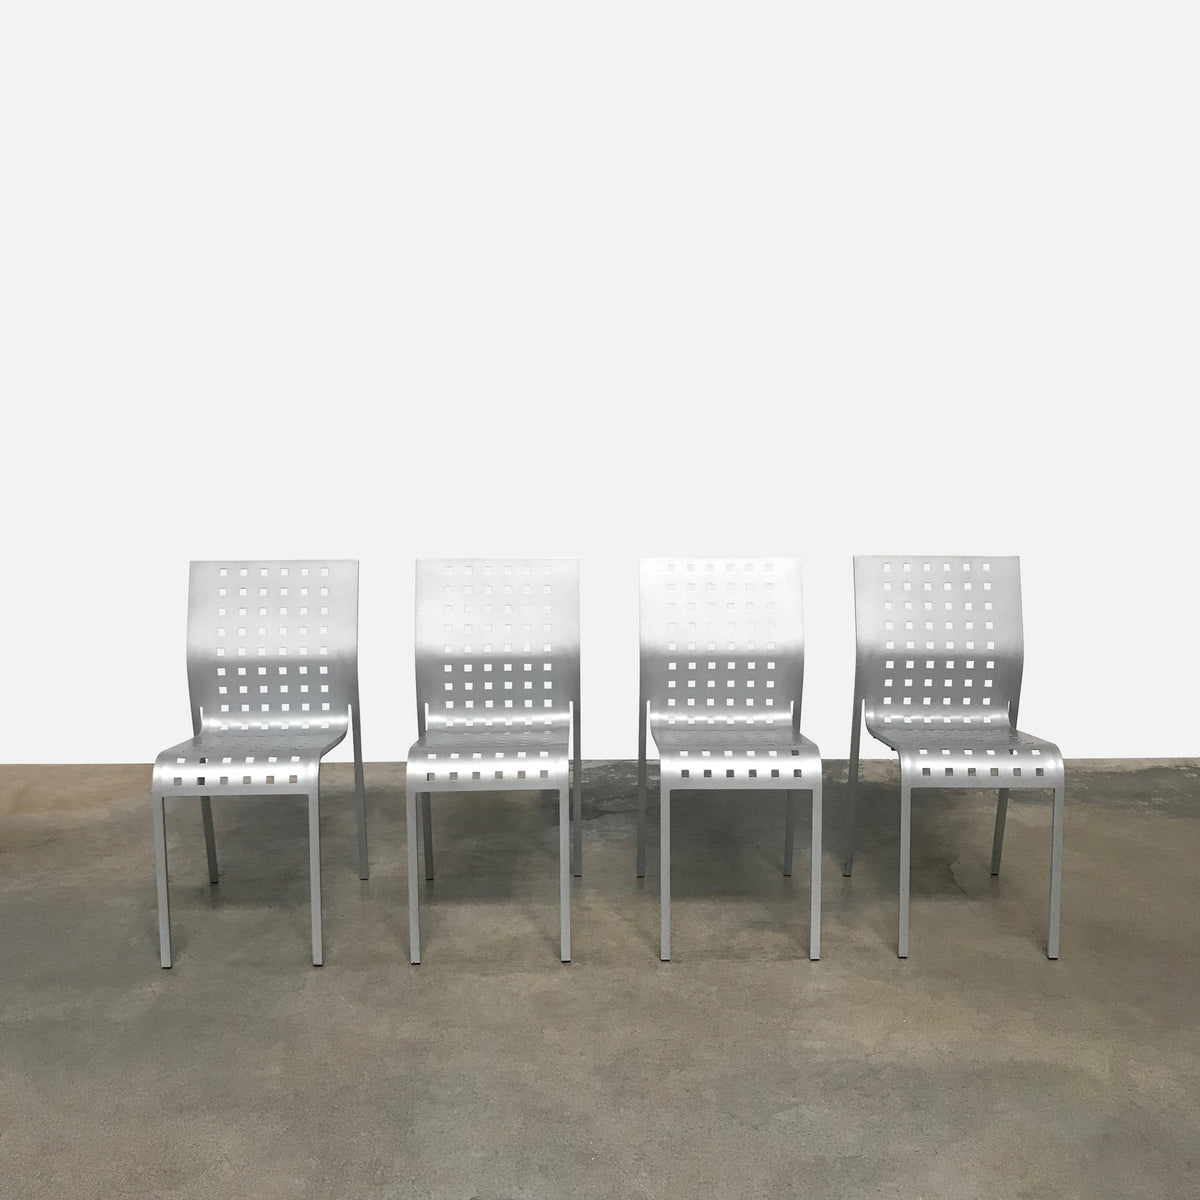 Aluminum Stackable Dining Chairs - $99 each